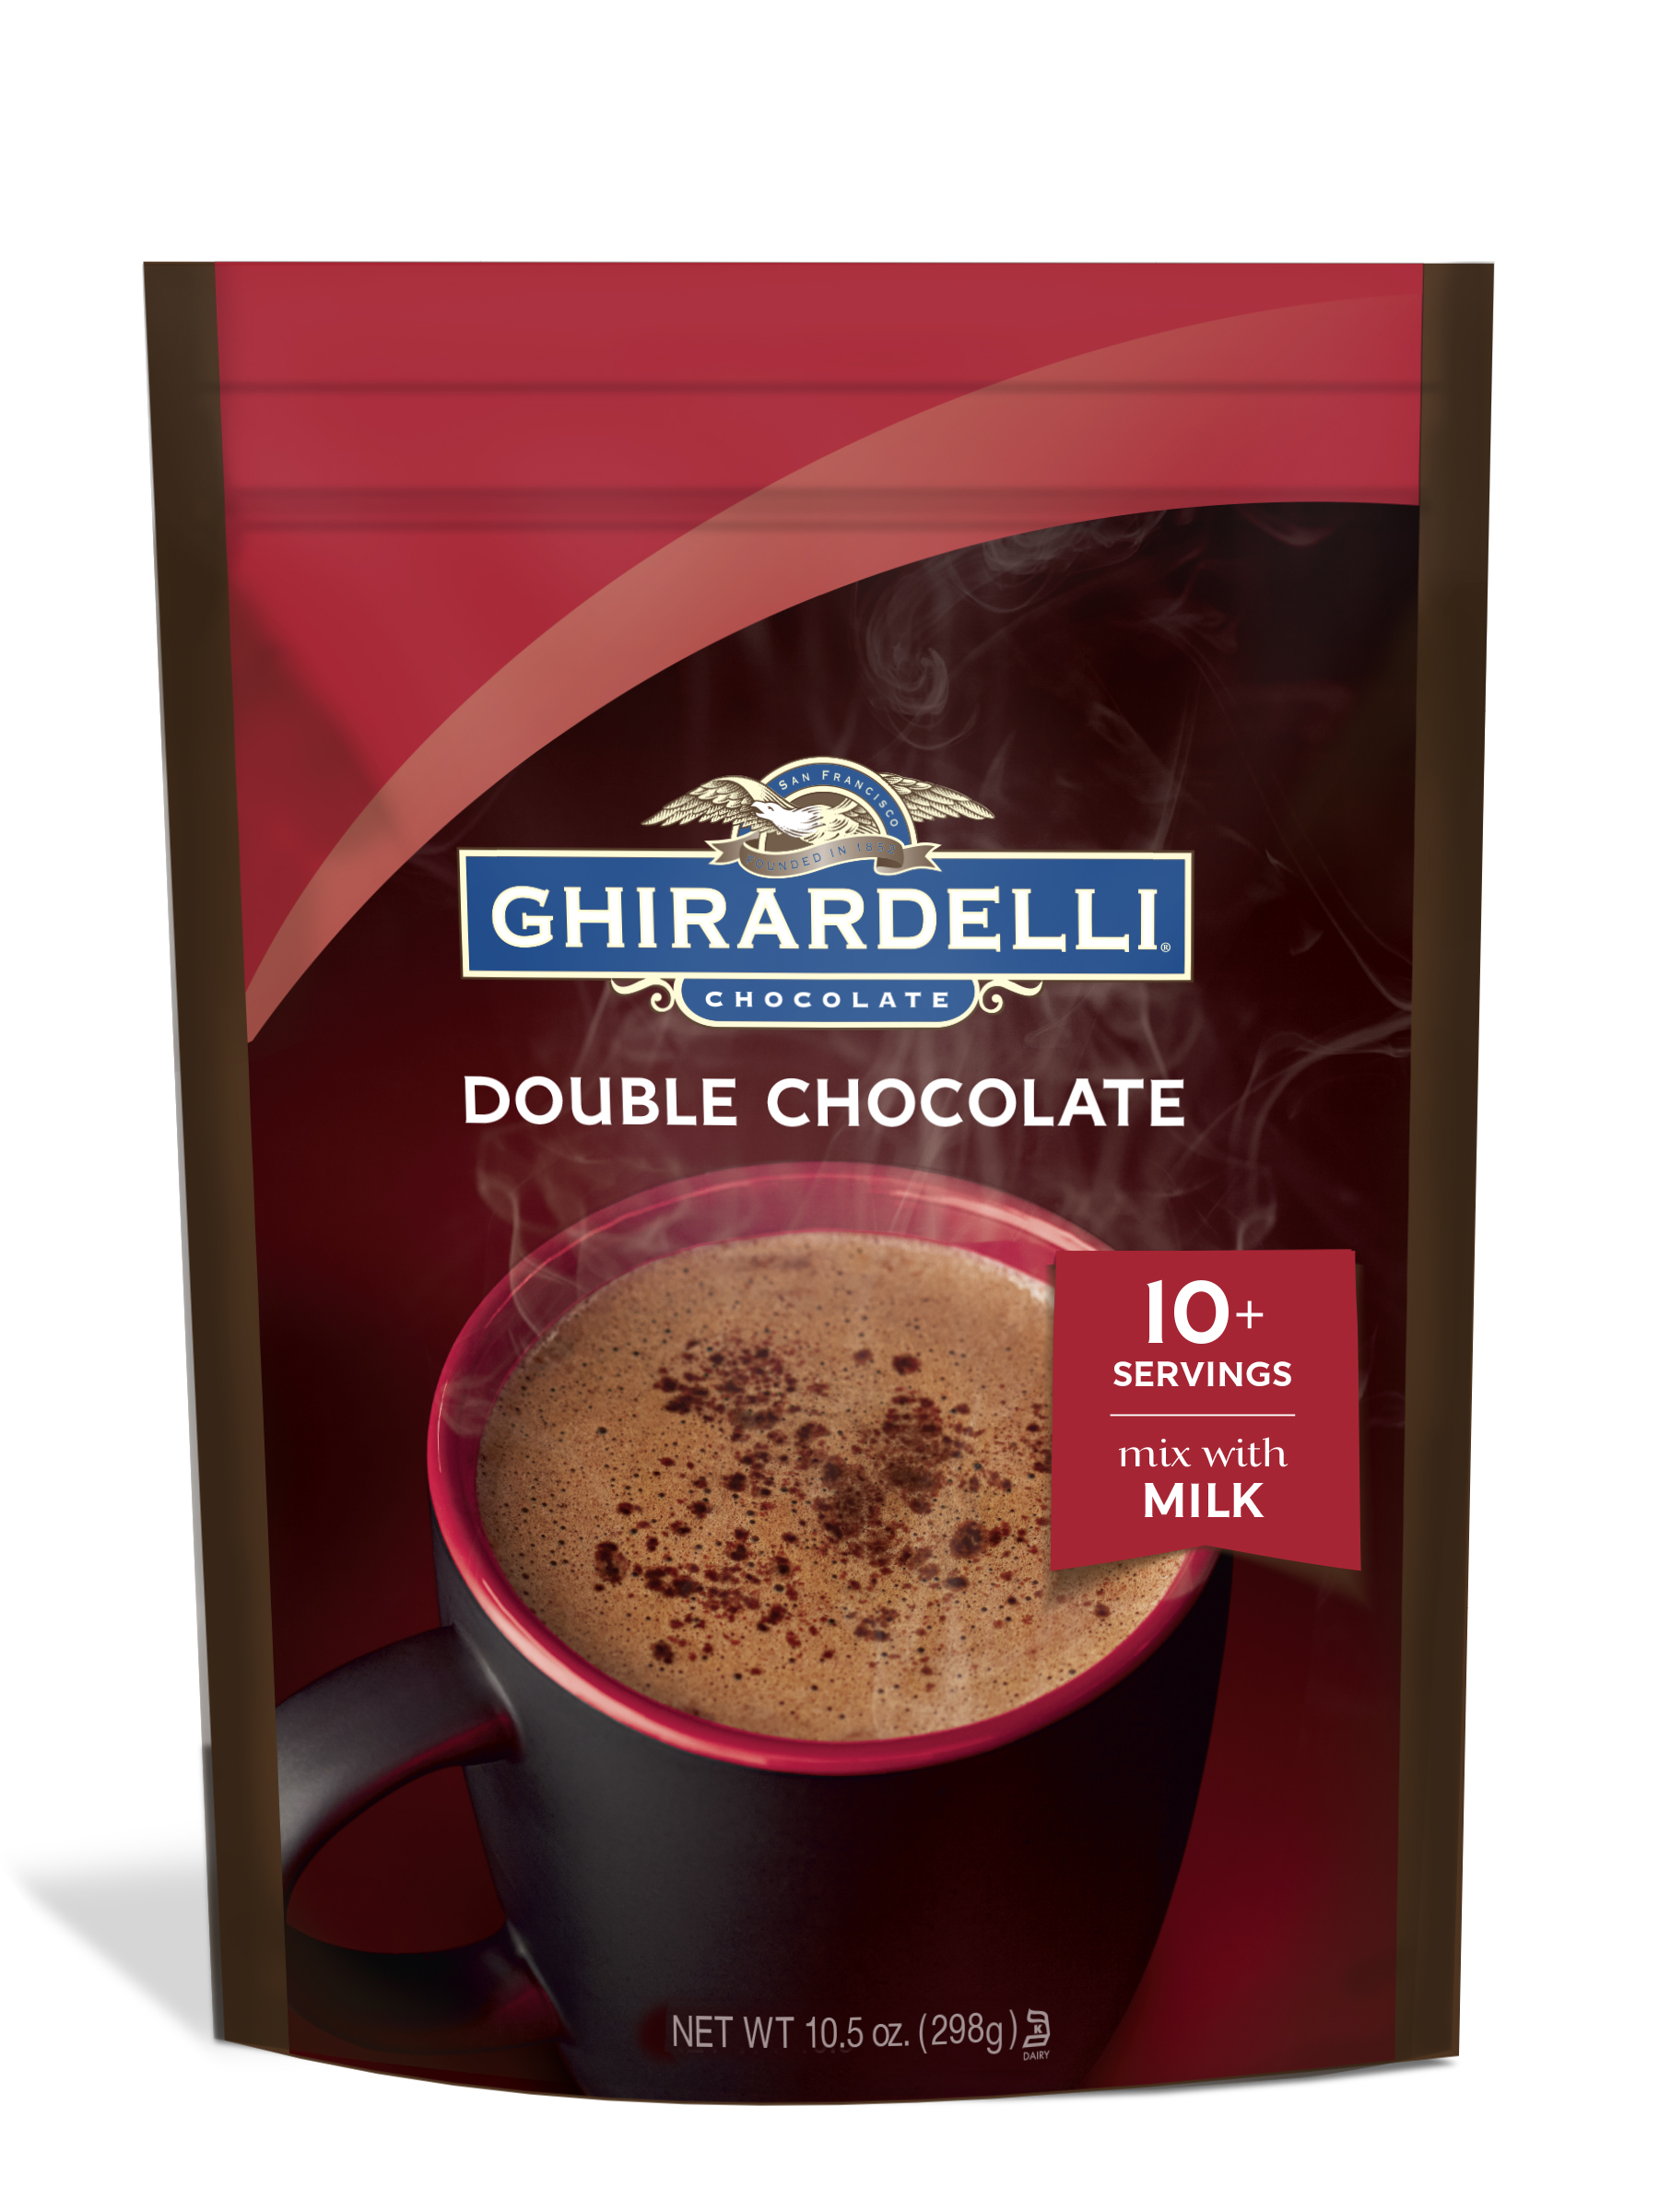 Image for Double Chocolate Premium Hot Cocoa (10.5 oz.) from Ghirardelli